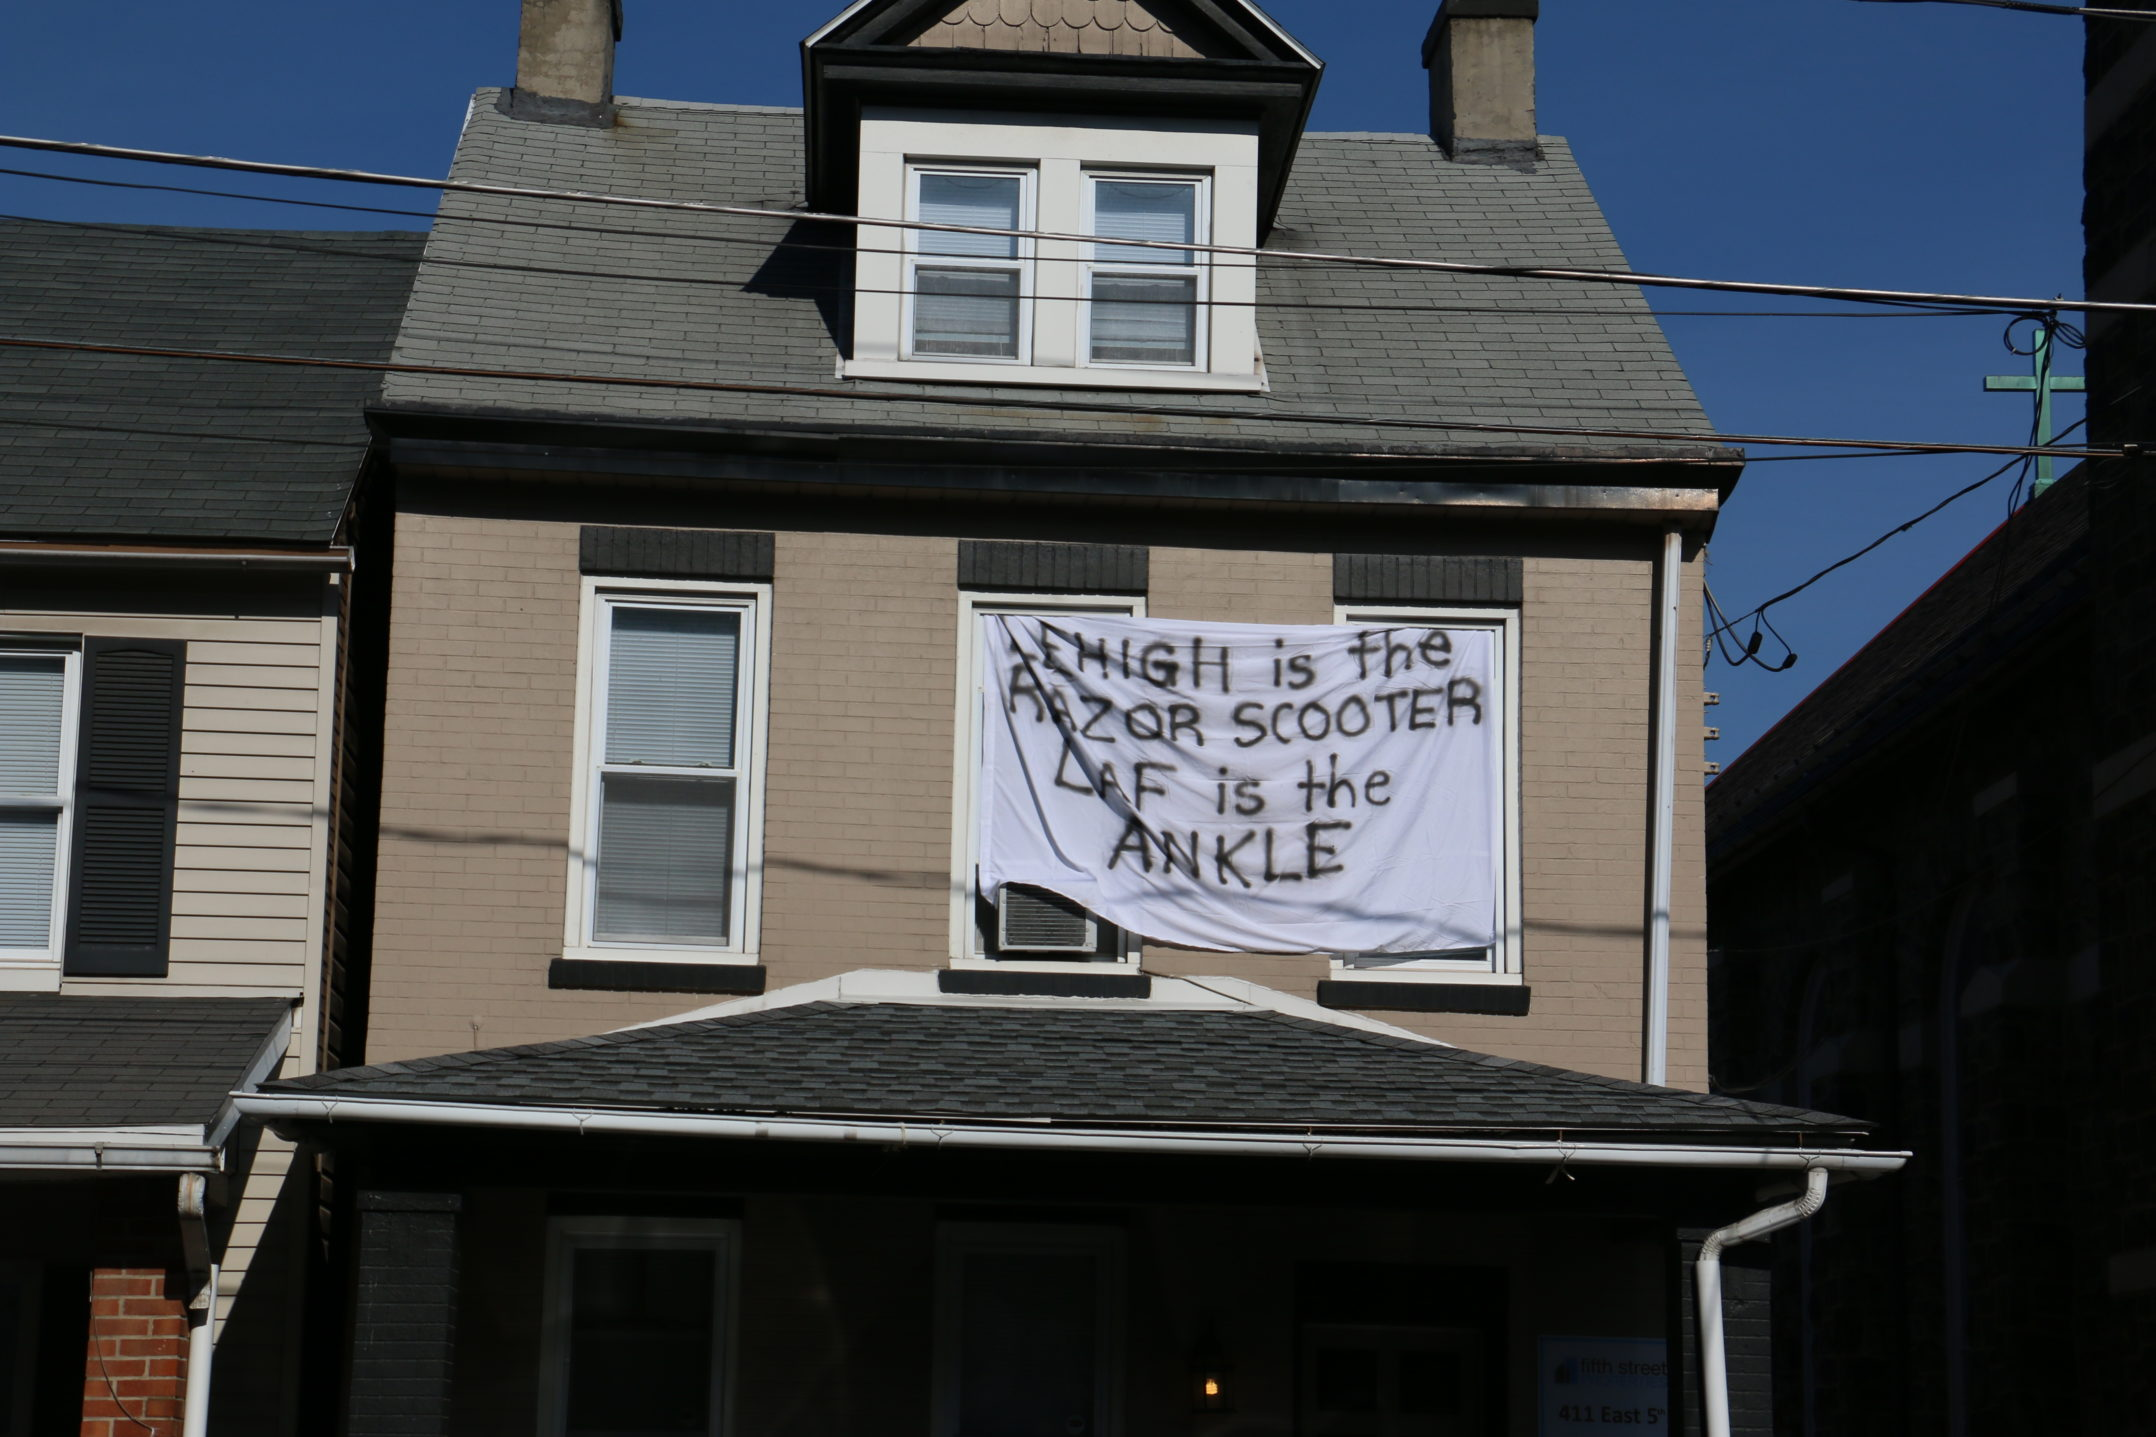 "A sign reading ""Lehigh is the Razor scooter, Laf is the ankle"" hangs outside a house on E. Fifth Street on Wednesday, Nov. 15, 2017. Many Lehigh students hang signs outside of their homes poking fun at Lafayette. (Parker Hentz/B&W Staff)"